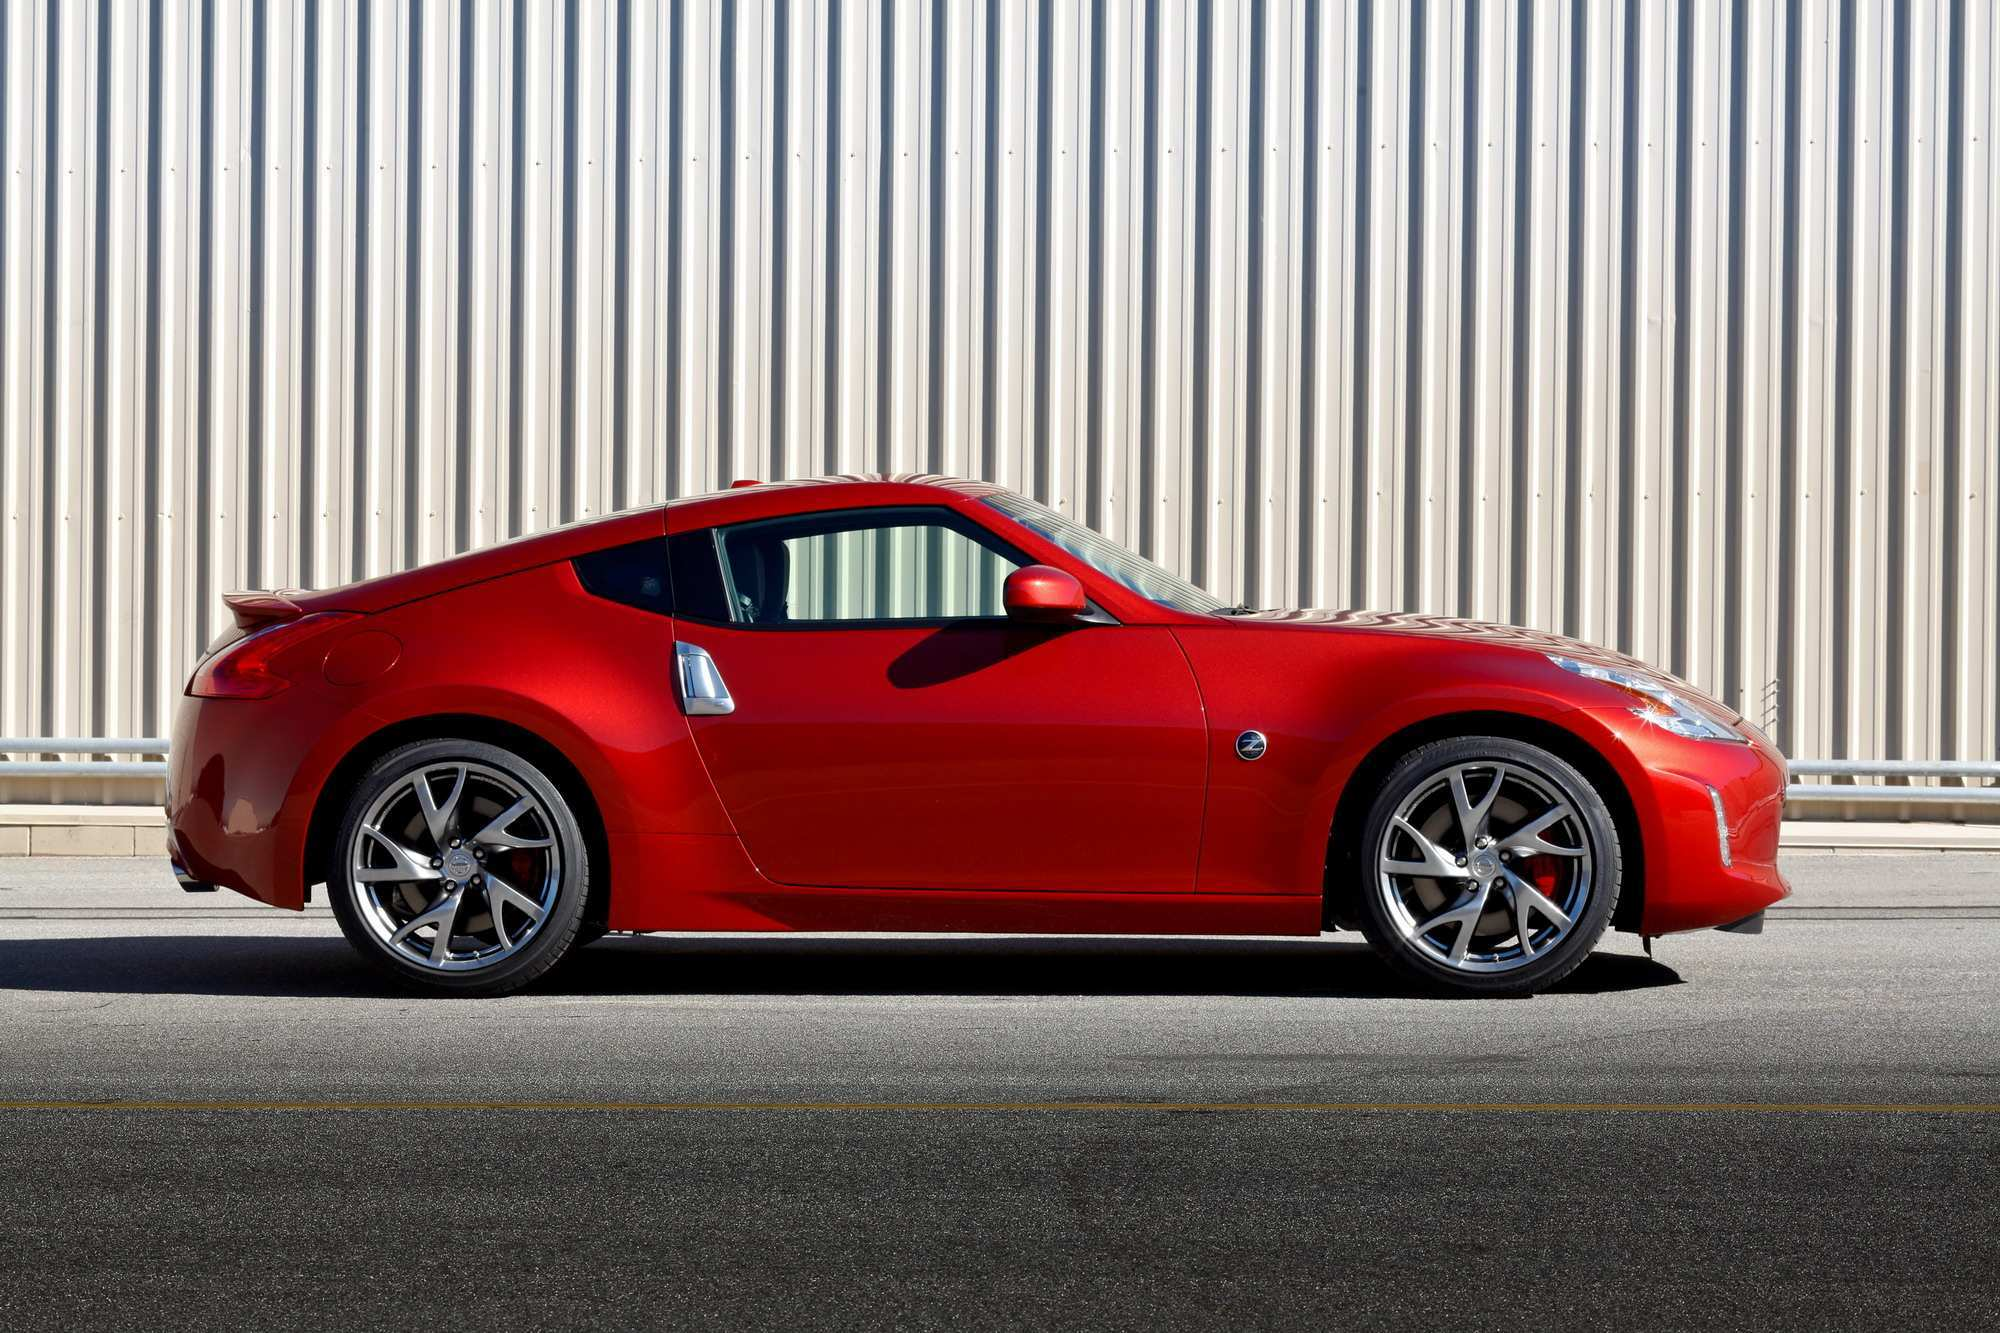 40 New Nissan New Z 2020 Exterior by Nissan New Z 2020